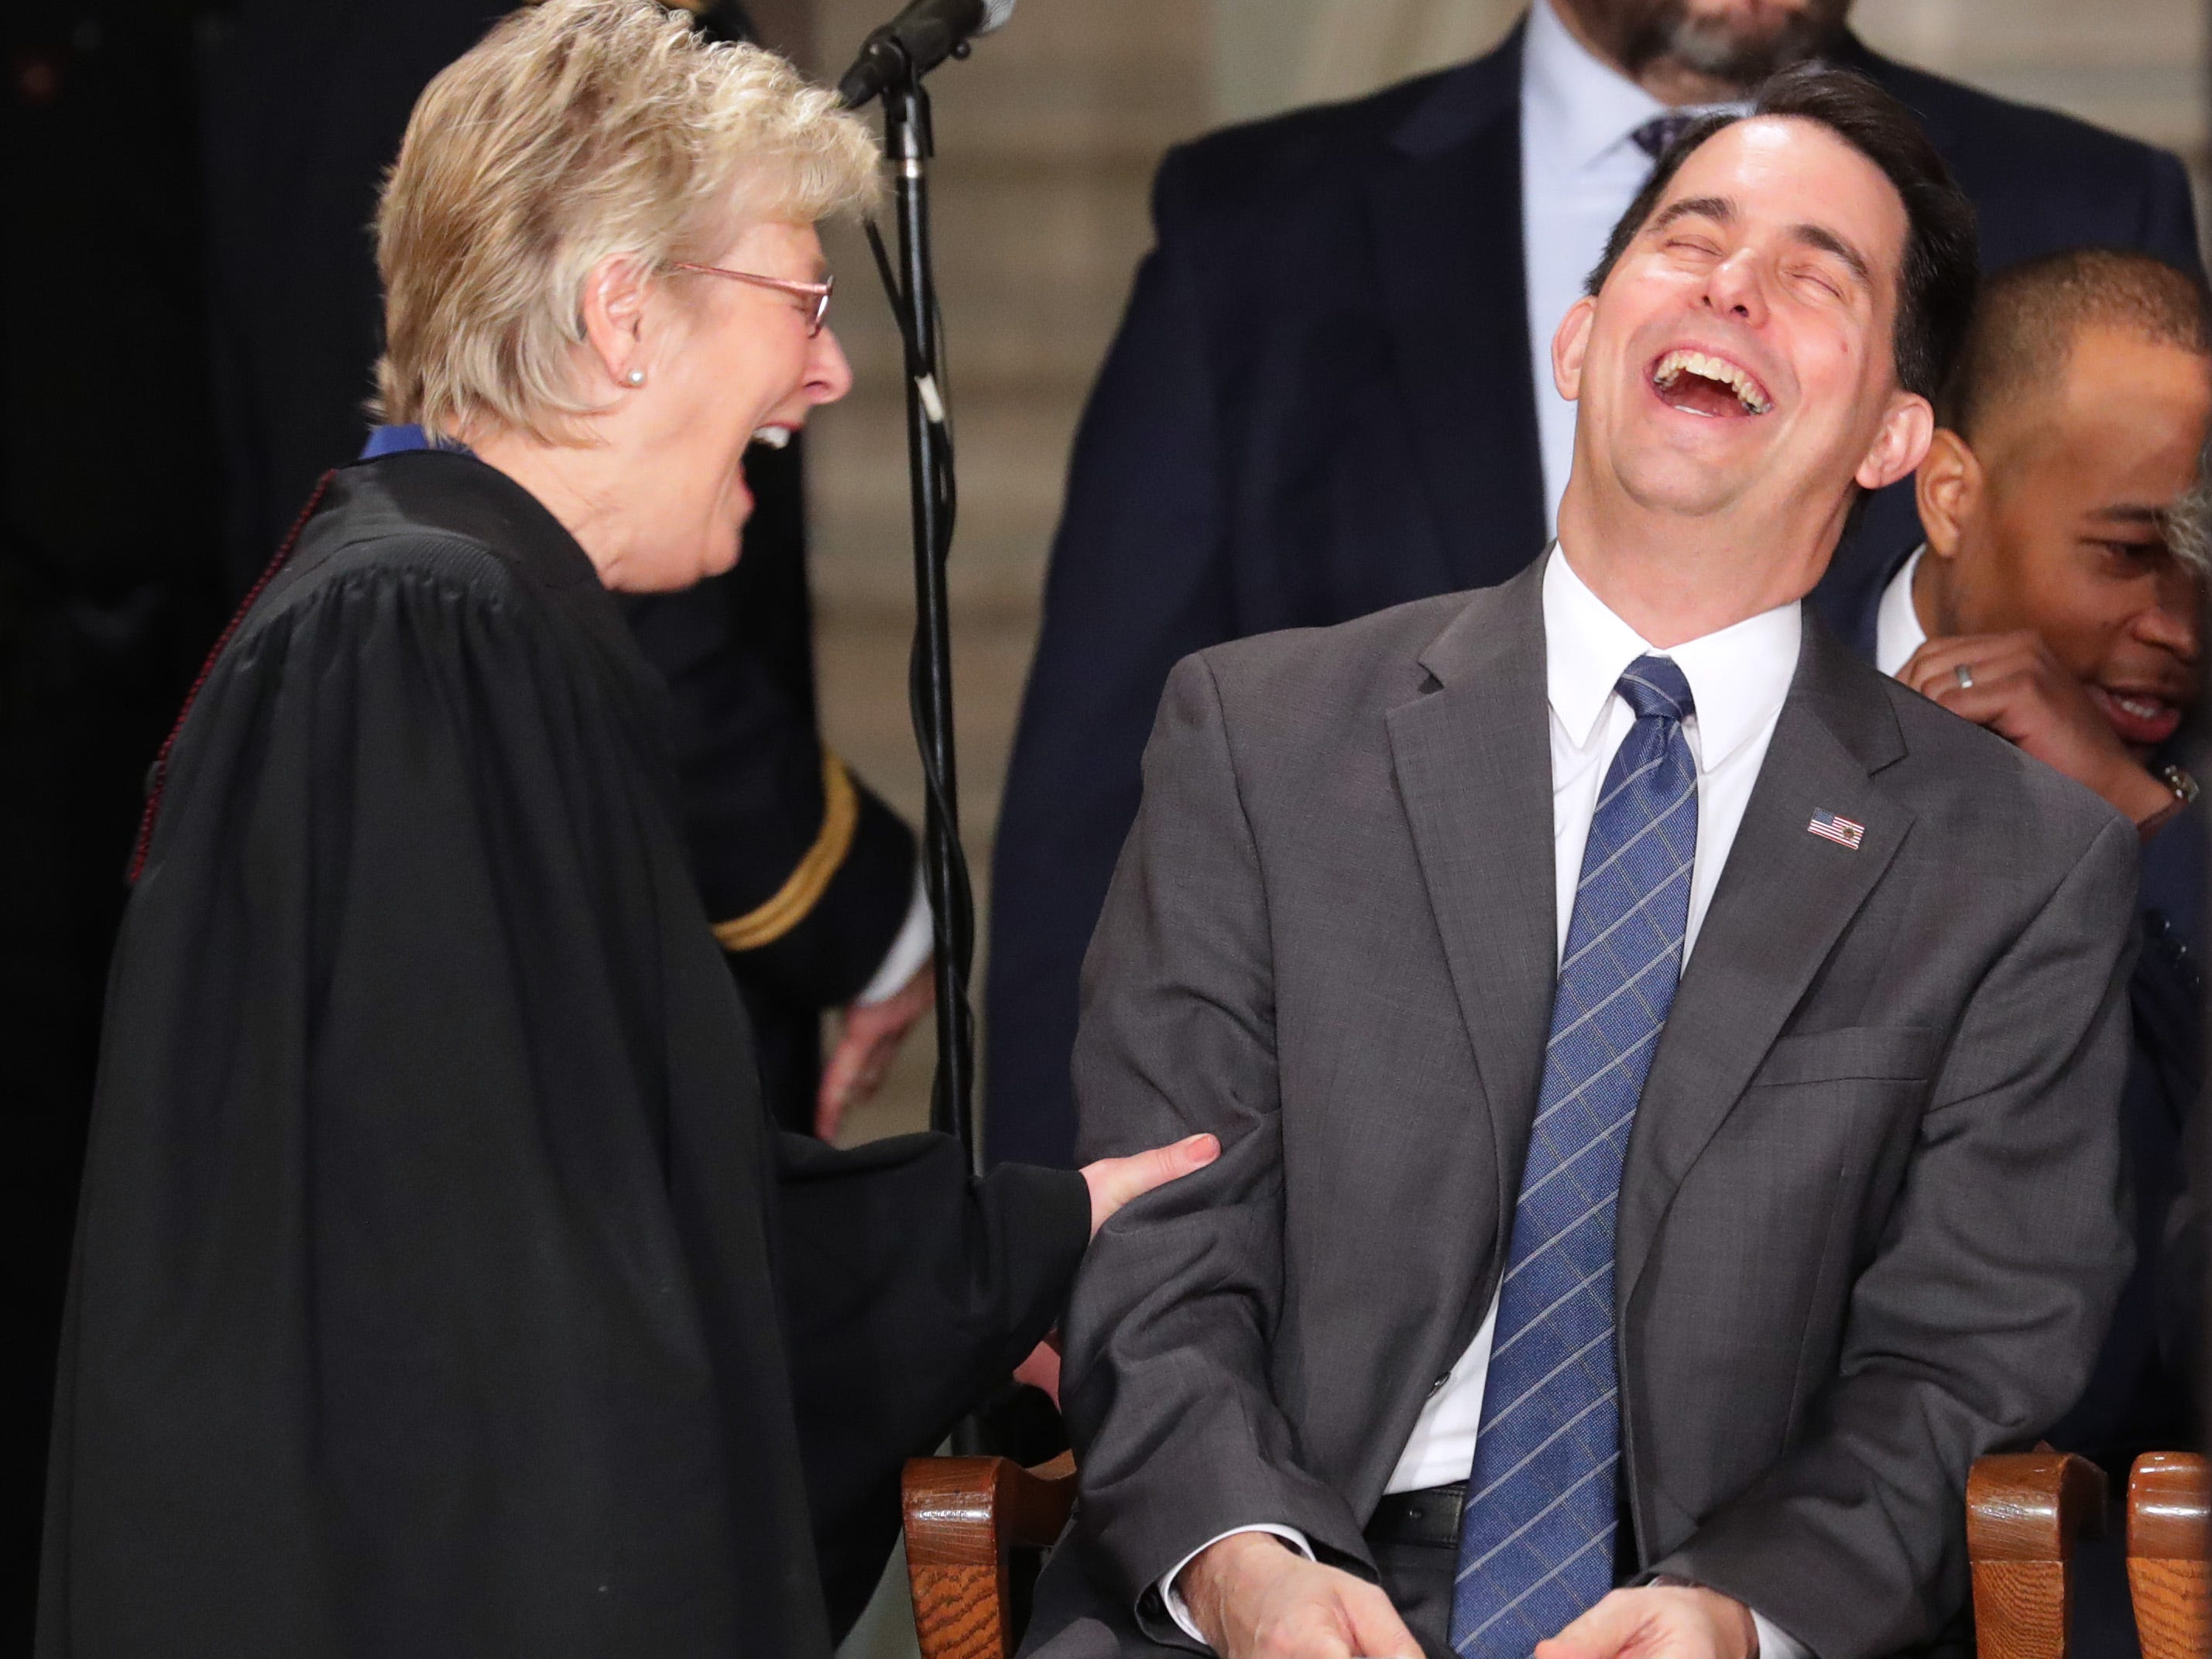 Associate Justice of the Wisconsin Supreme Court Ann Walsh Bradley (left) jokes with outgoing Gov. Scott Walker  before the inaugural event.